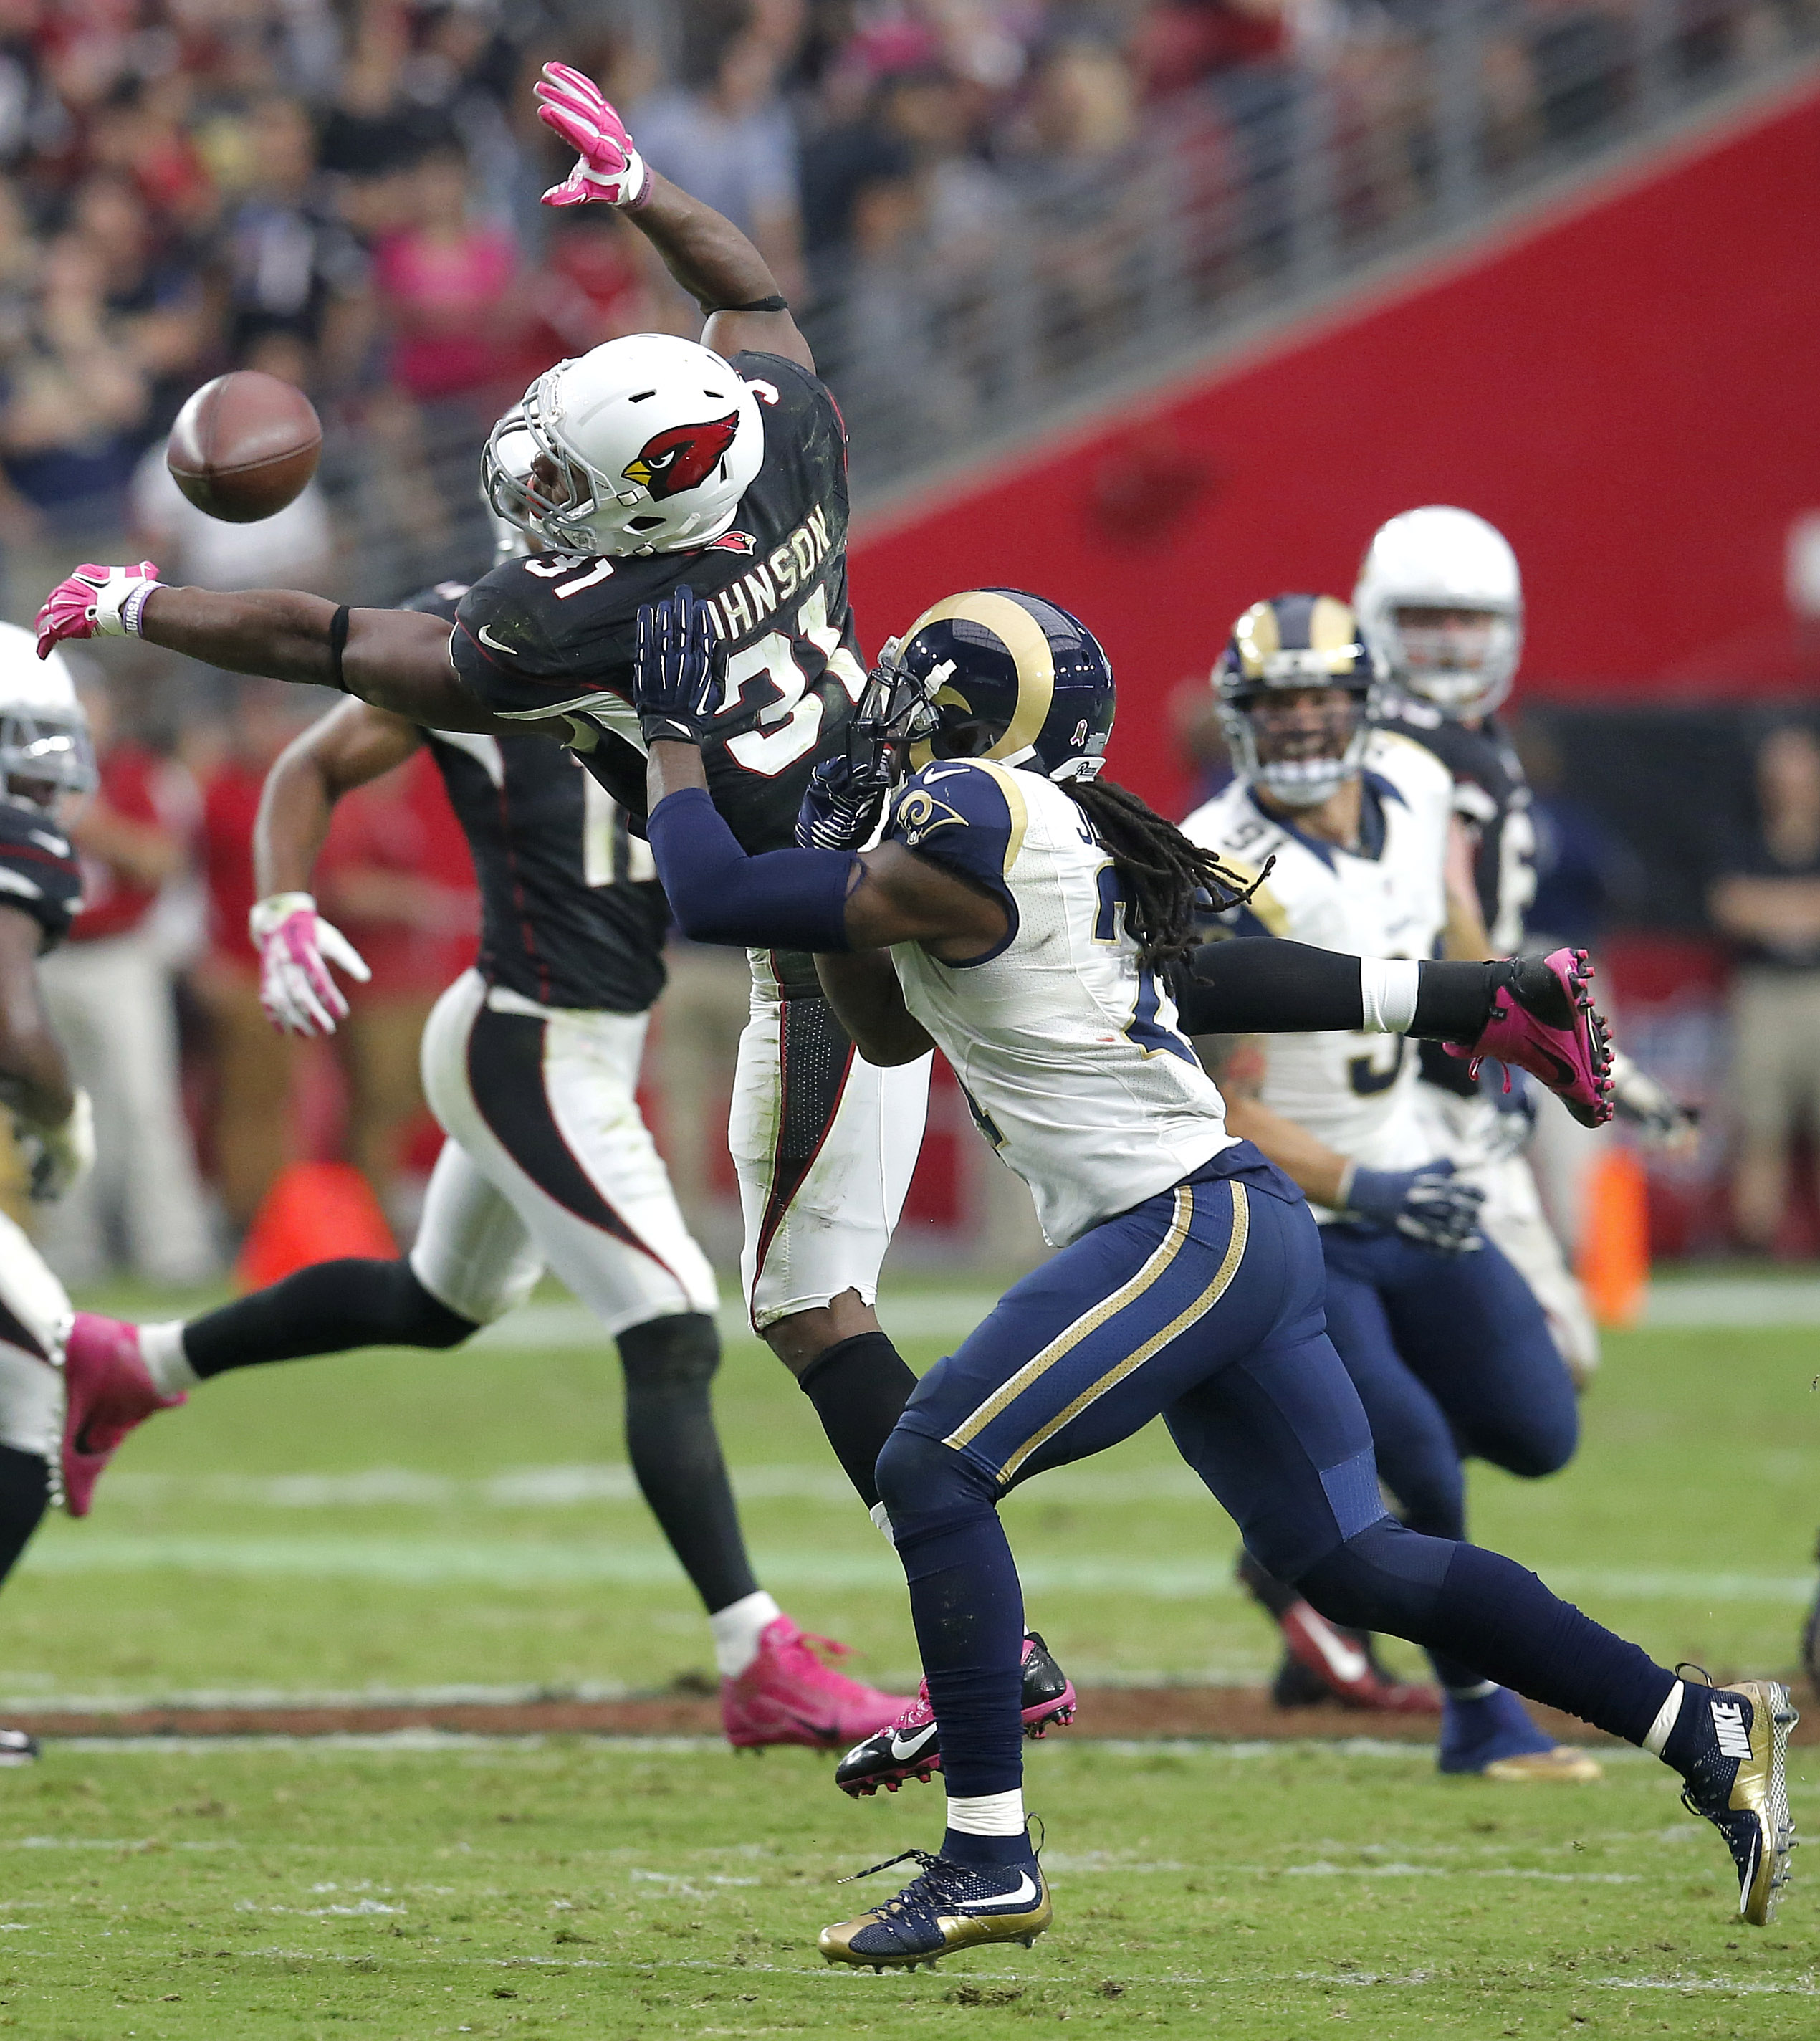 Arizona Cardinals running back David Johnson (31) can't make the catch on fourth down as St. Louis Rams cornerback Janoris Jenkins (21) defends the second half of an NFL football game, Sunday, Oct. 4, 2015, in Glendale, Ariz. The Rams won 24-22. (AP Photo